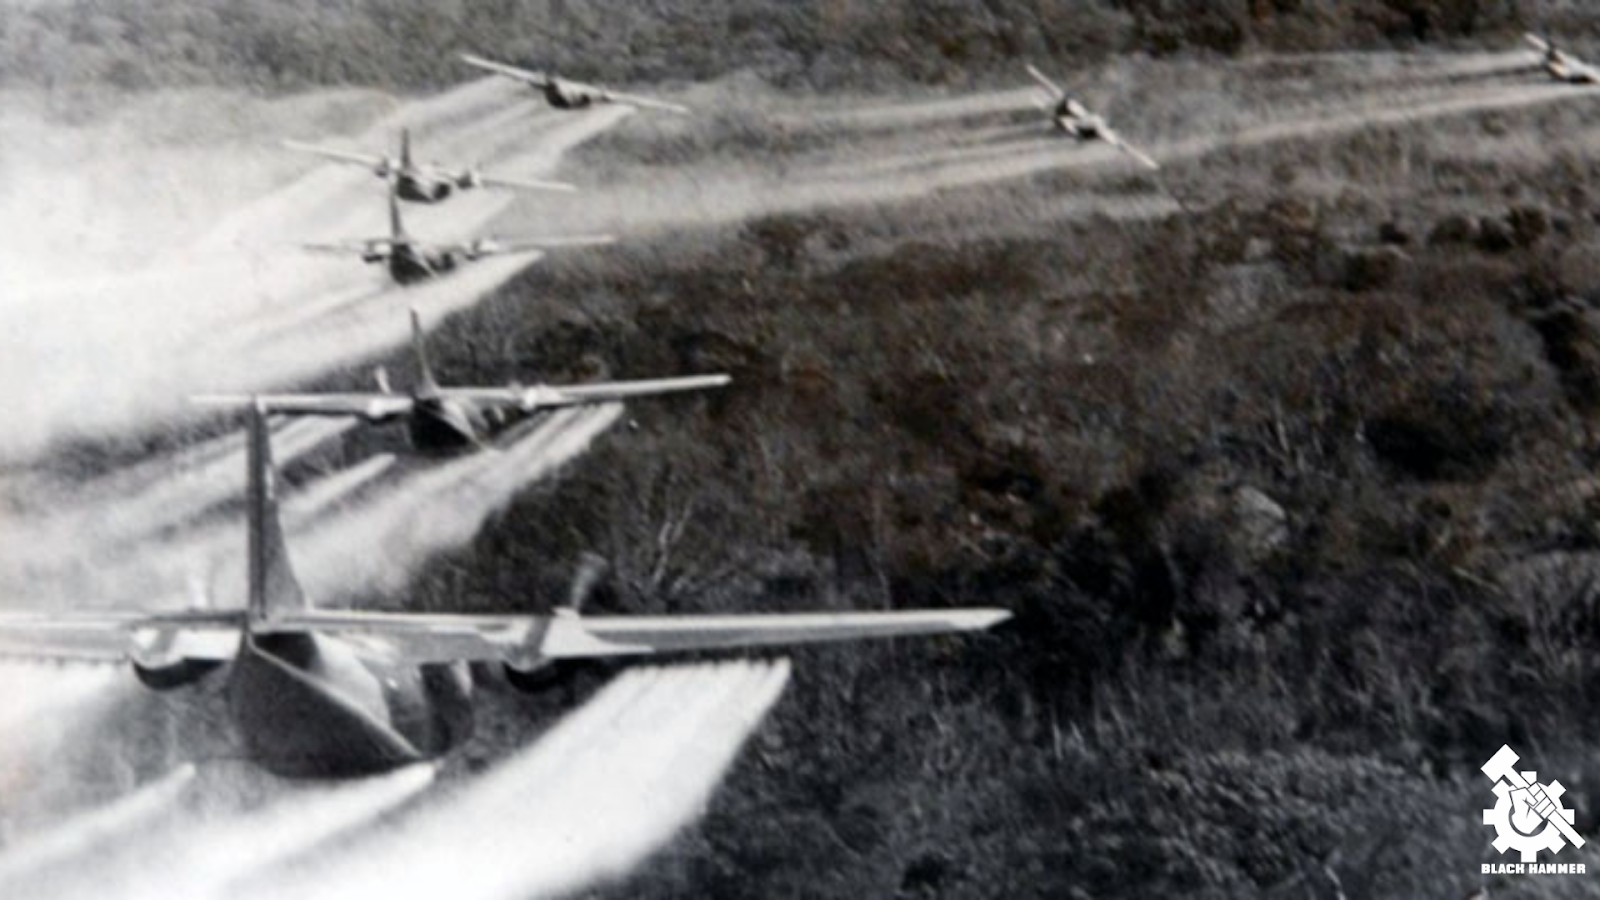 Operation Ranch Hand: 19-20 million gallons of toxic herbicides & Agent Orange that targeted Cambodia, Laos & Vietnam